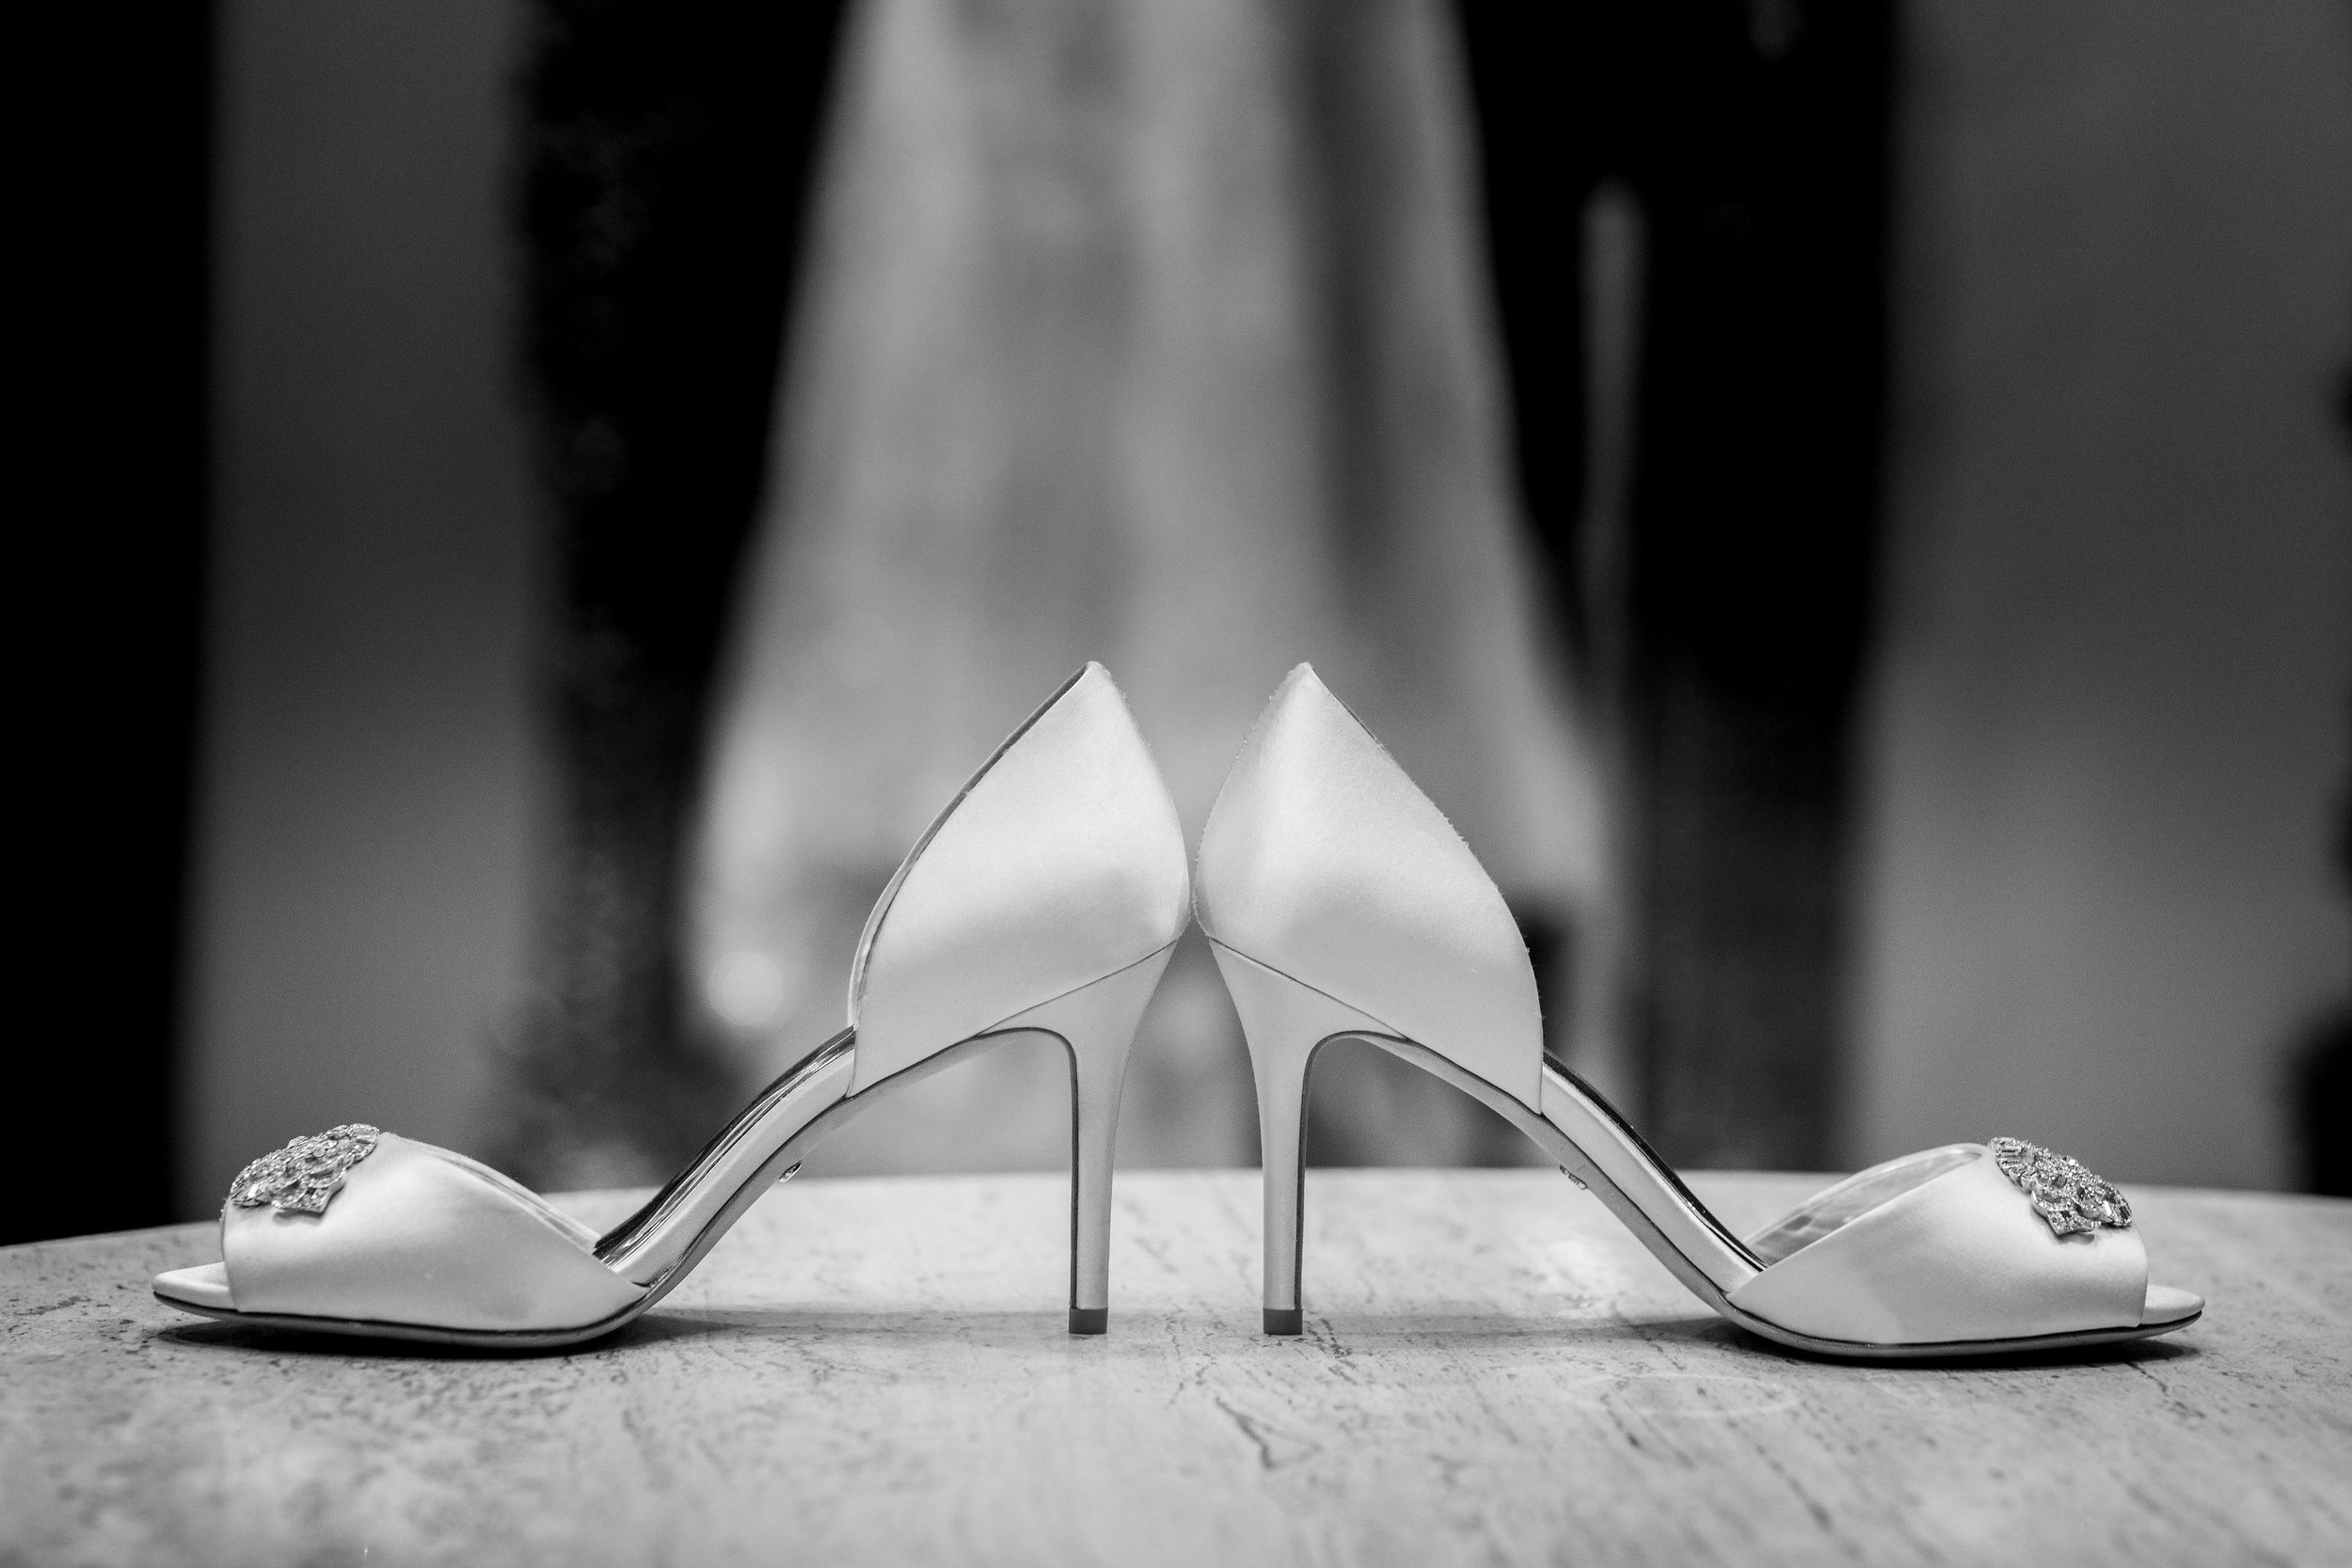 BW Photo of Getting Ready Wedding Shoes.jpg